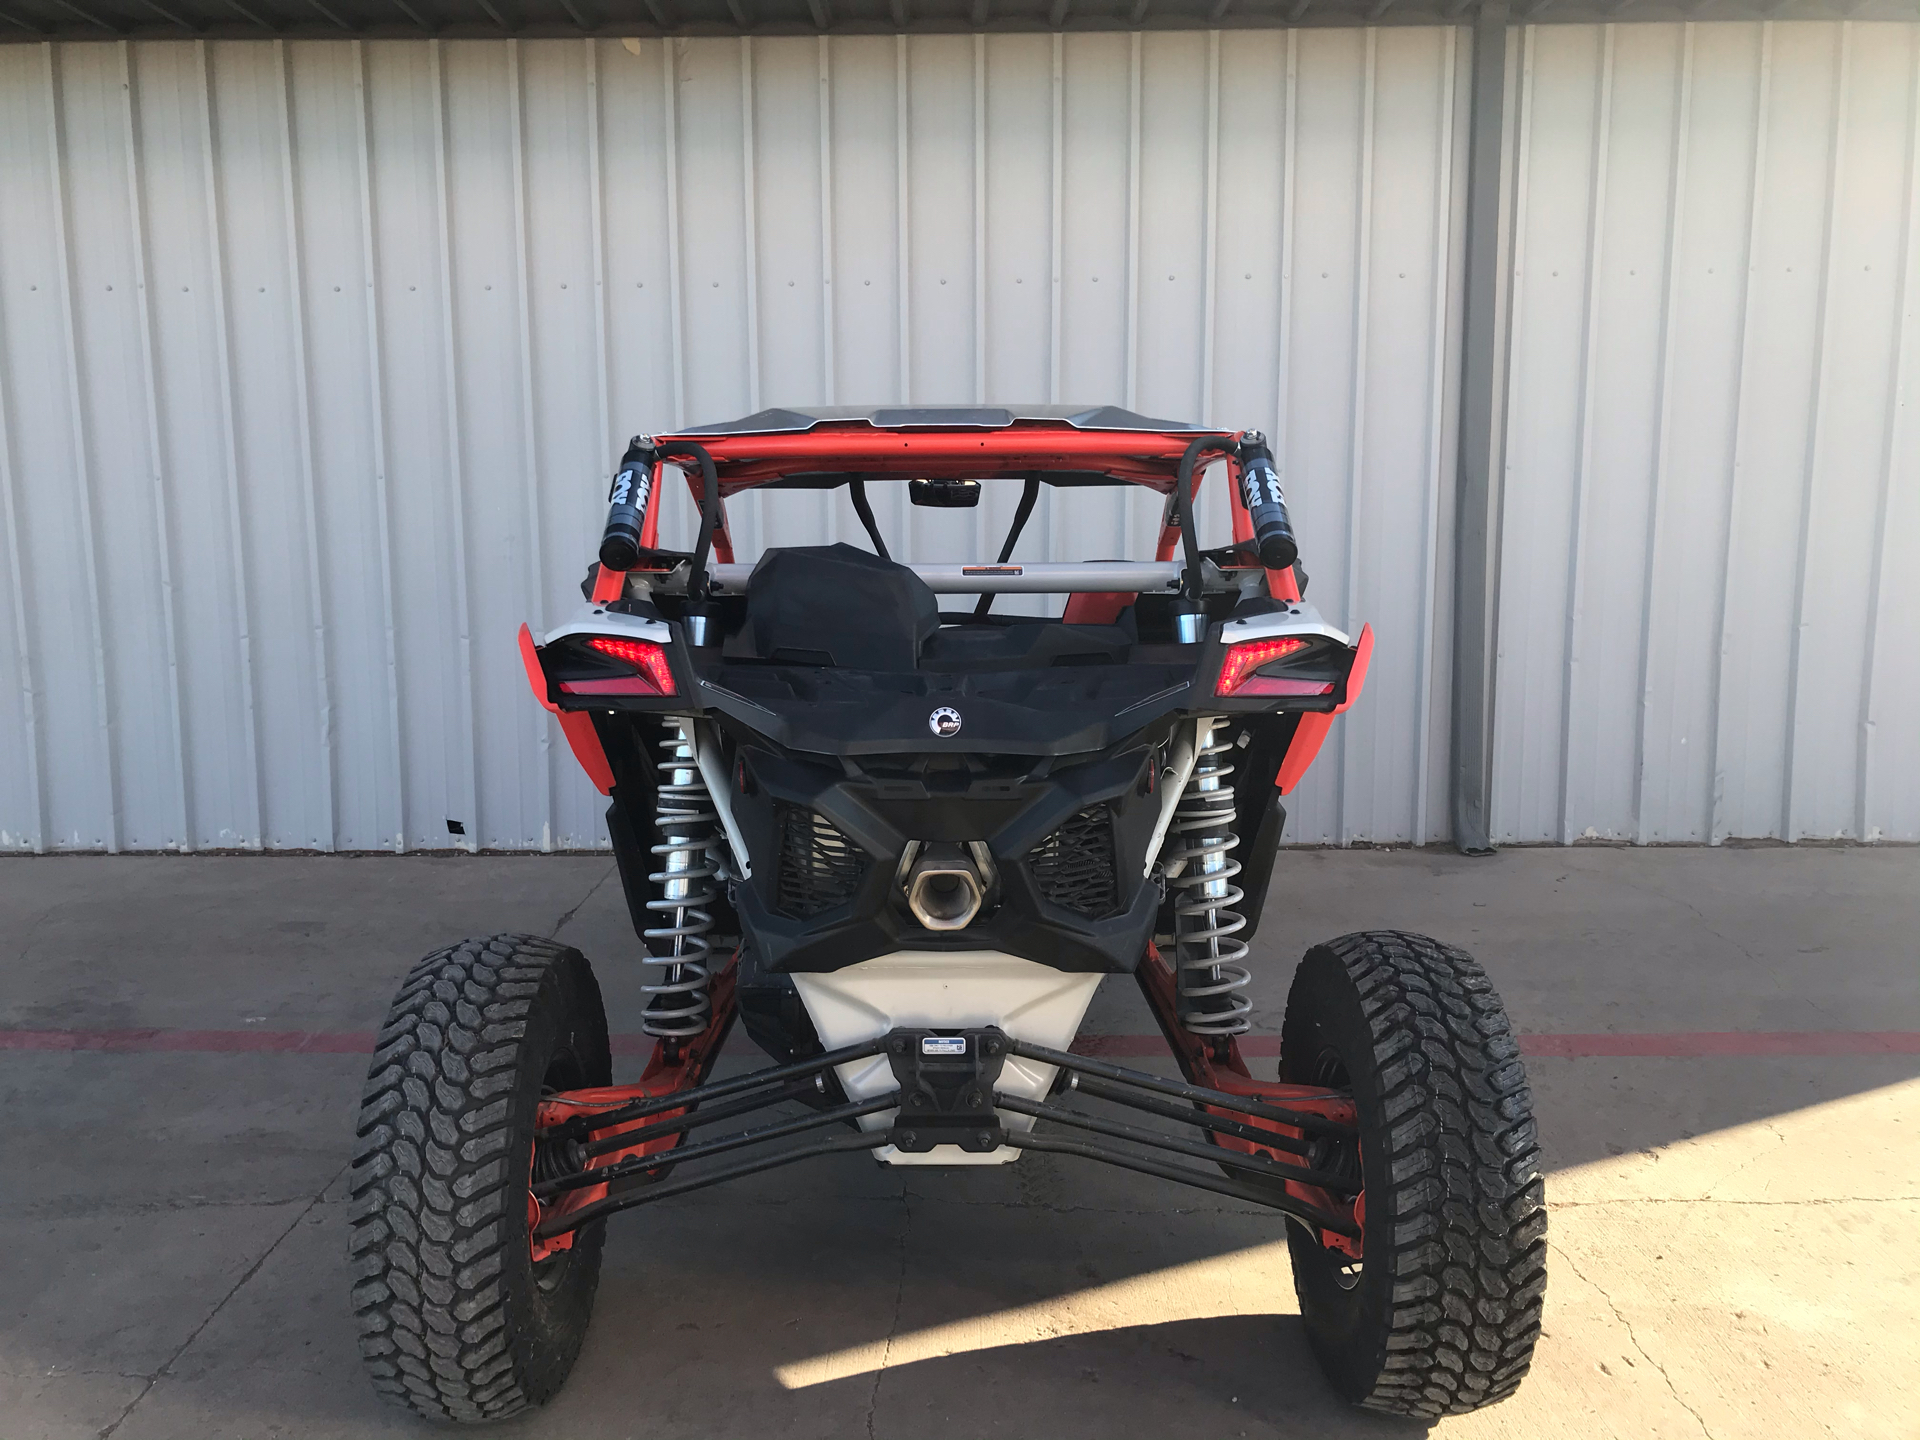 2021 Can-Am Maverick X3 X RC Turbo RR in Amarillo, Texas - Photo 4